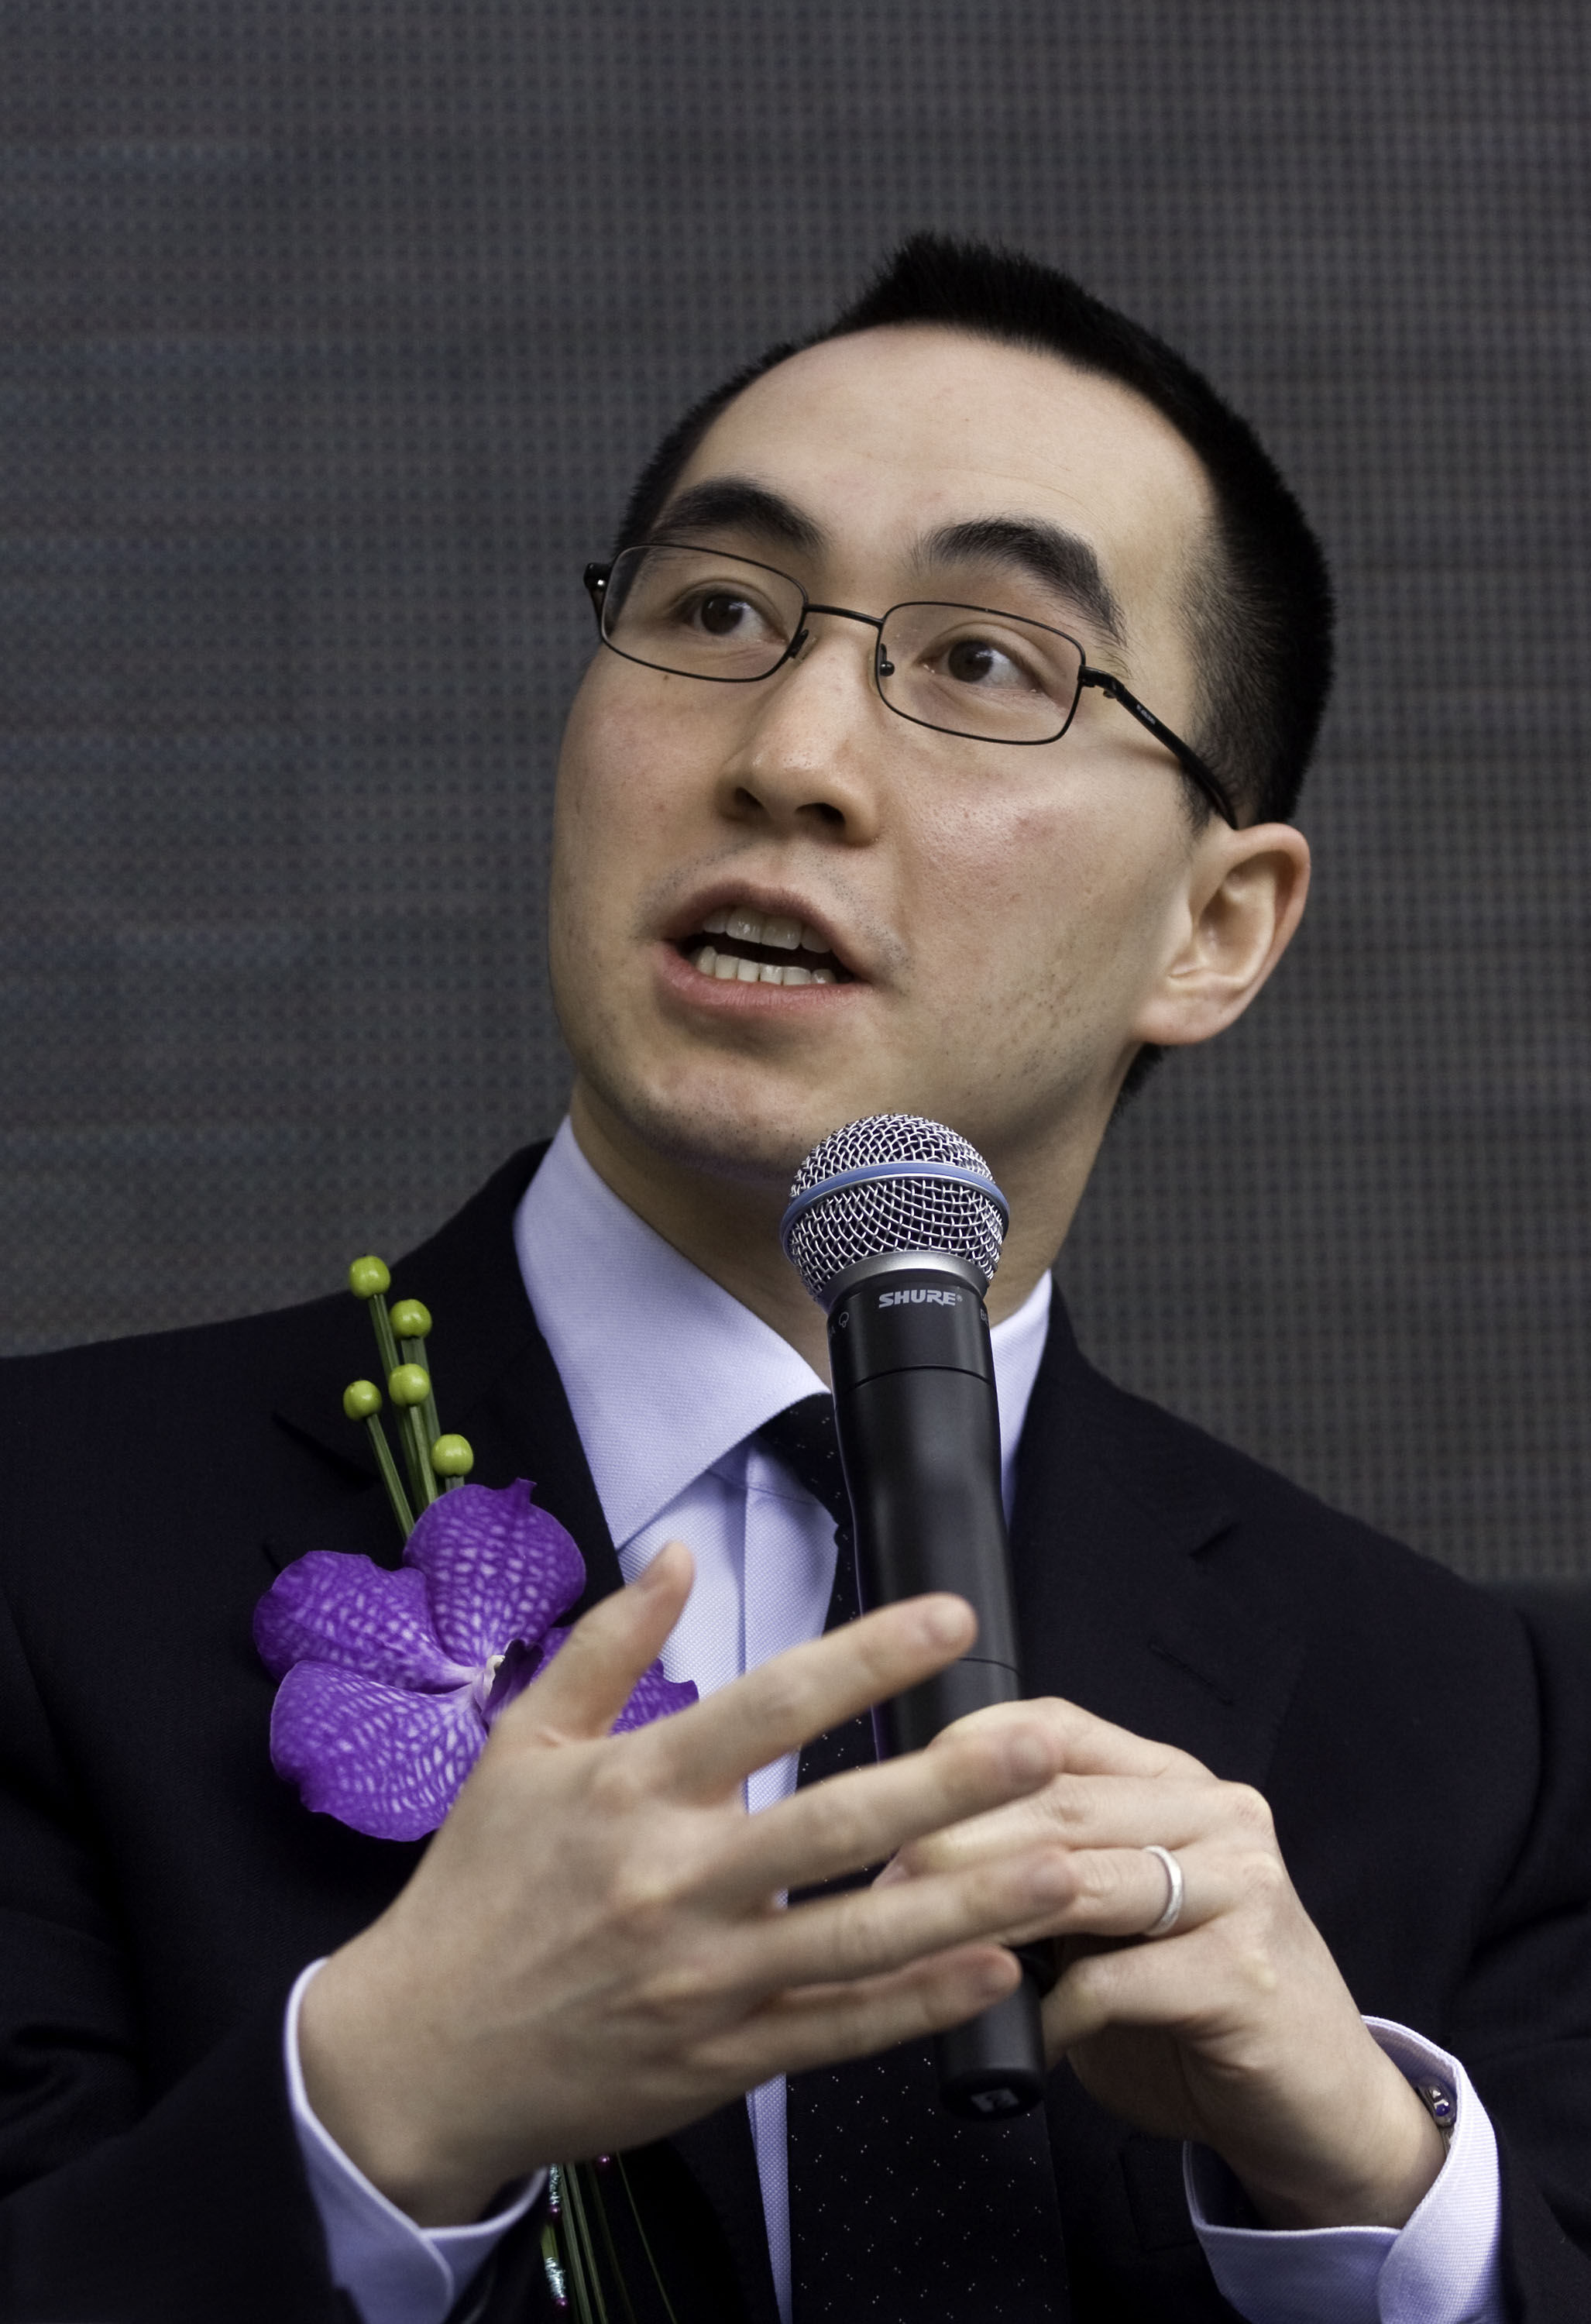 Lawrence Ho is seen speaking at a news conference in Macau in this April 2008 file photo.